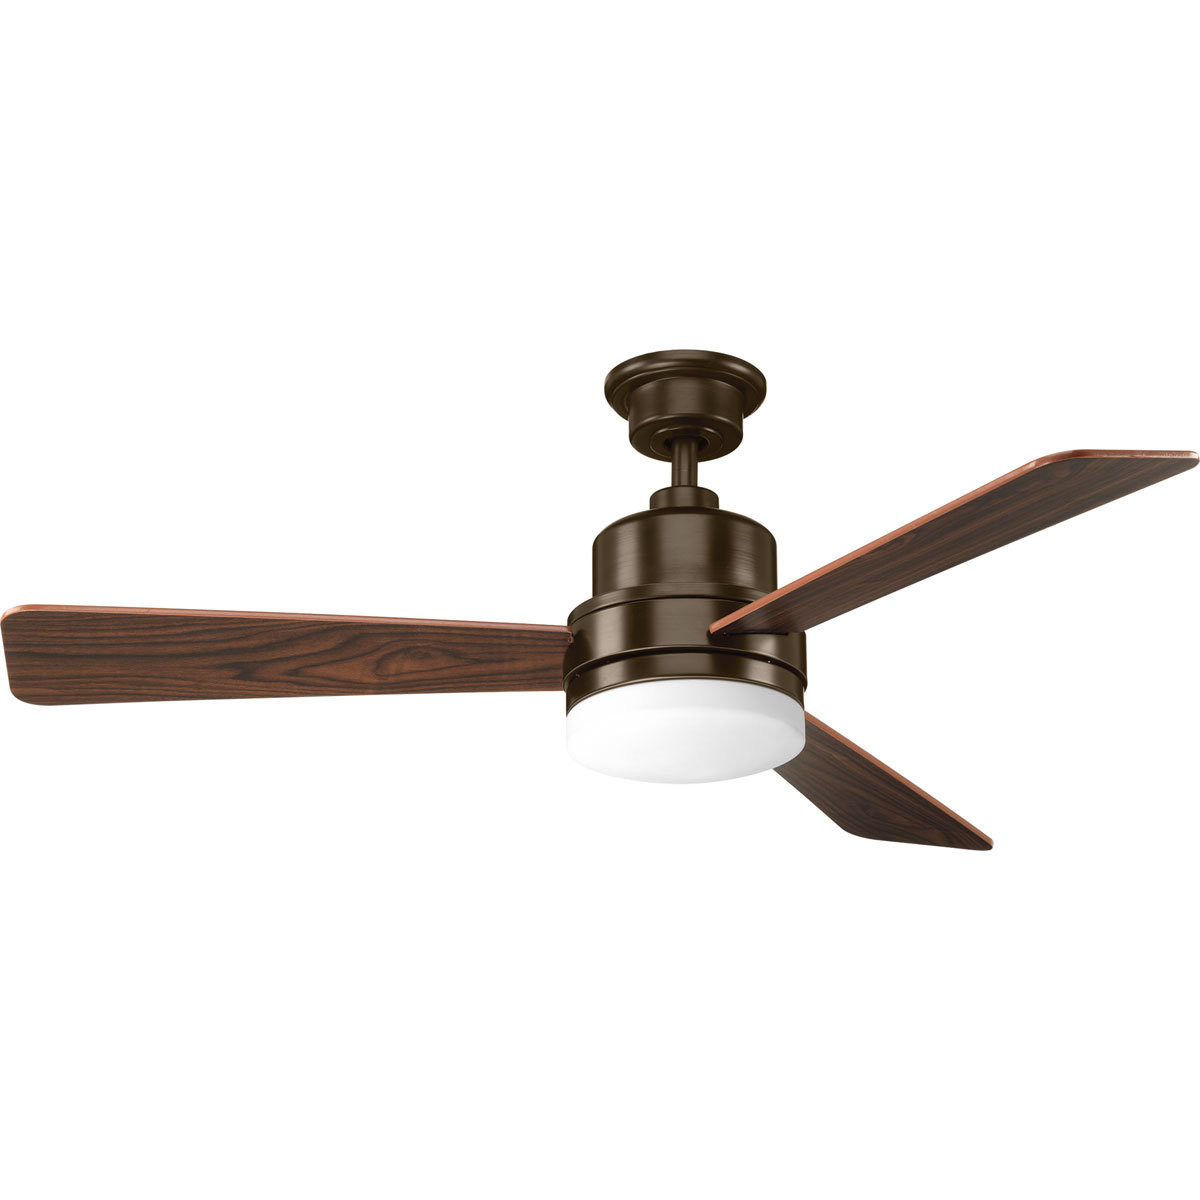 "52"" Rathburn 3 Blade Ceiling Fan, Light Kit Included Regarding Widely Used Troy 3 Blade Led Ceiling Fans (View 8 of 20)"